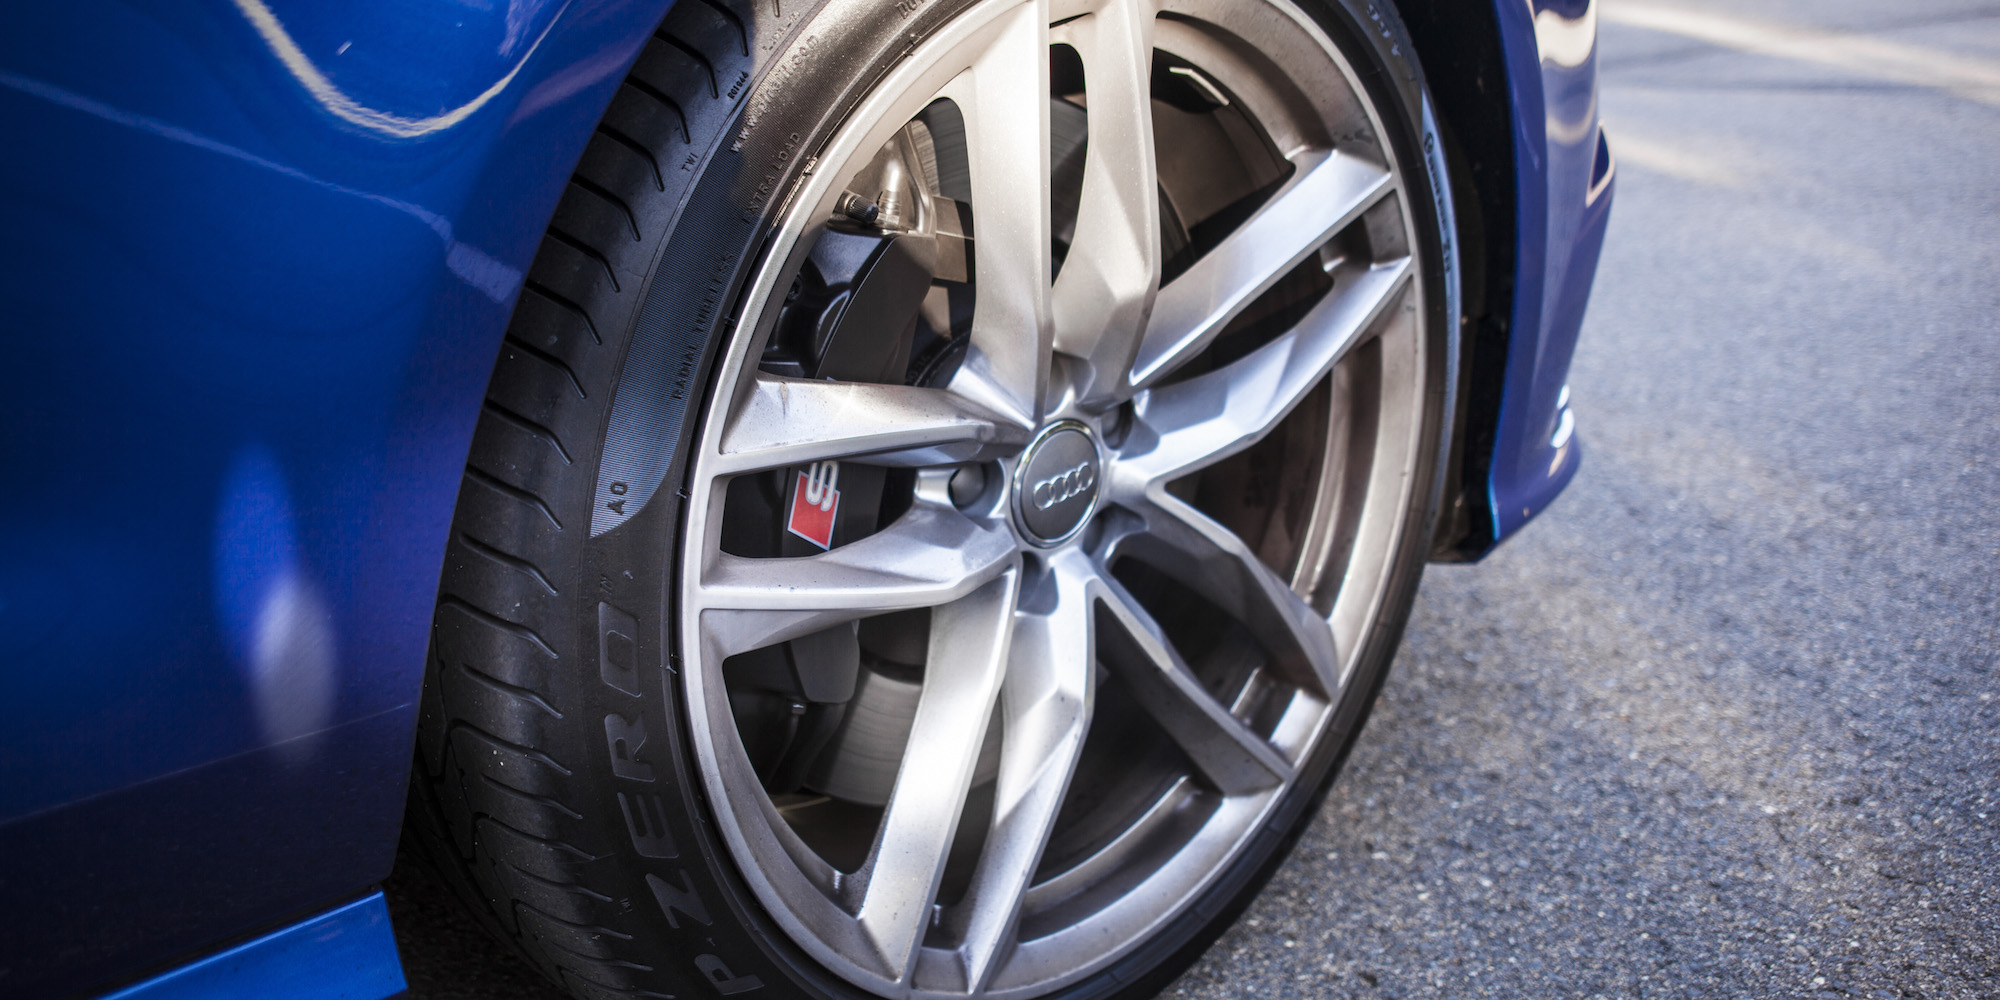 2016 Audi S7 Wheel (View 13 of 30)